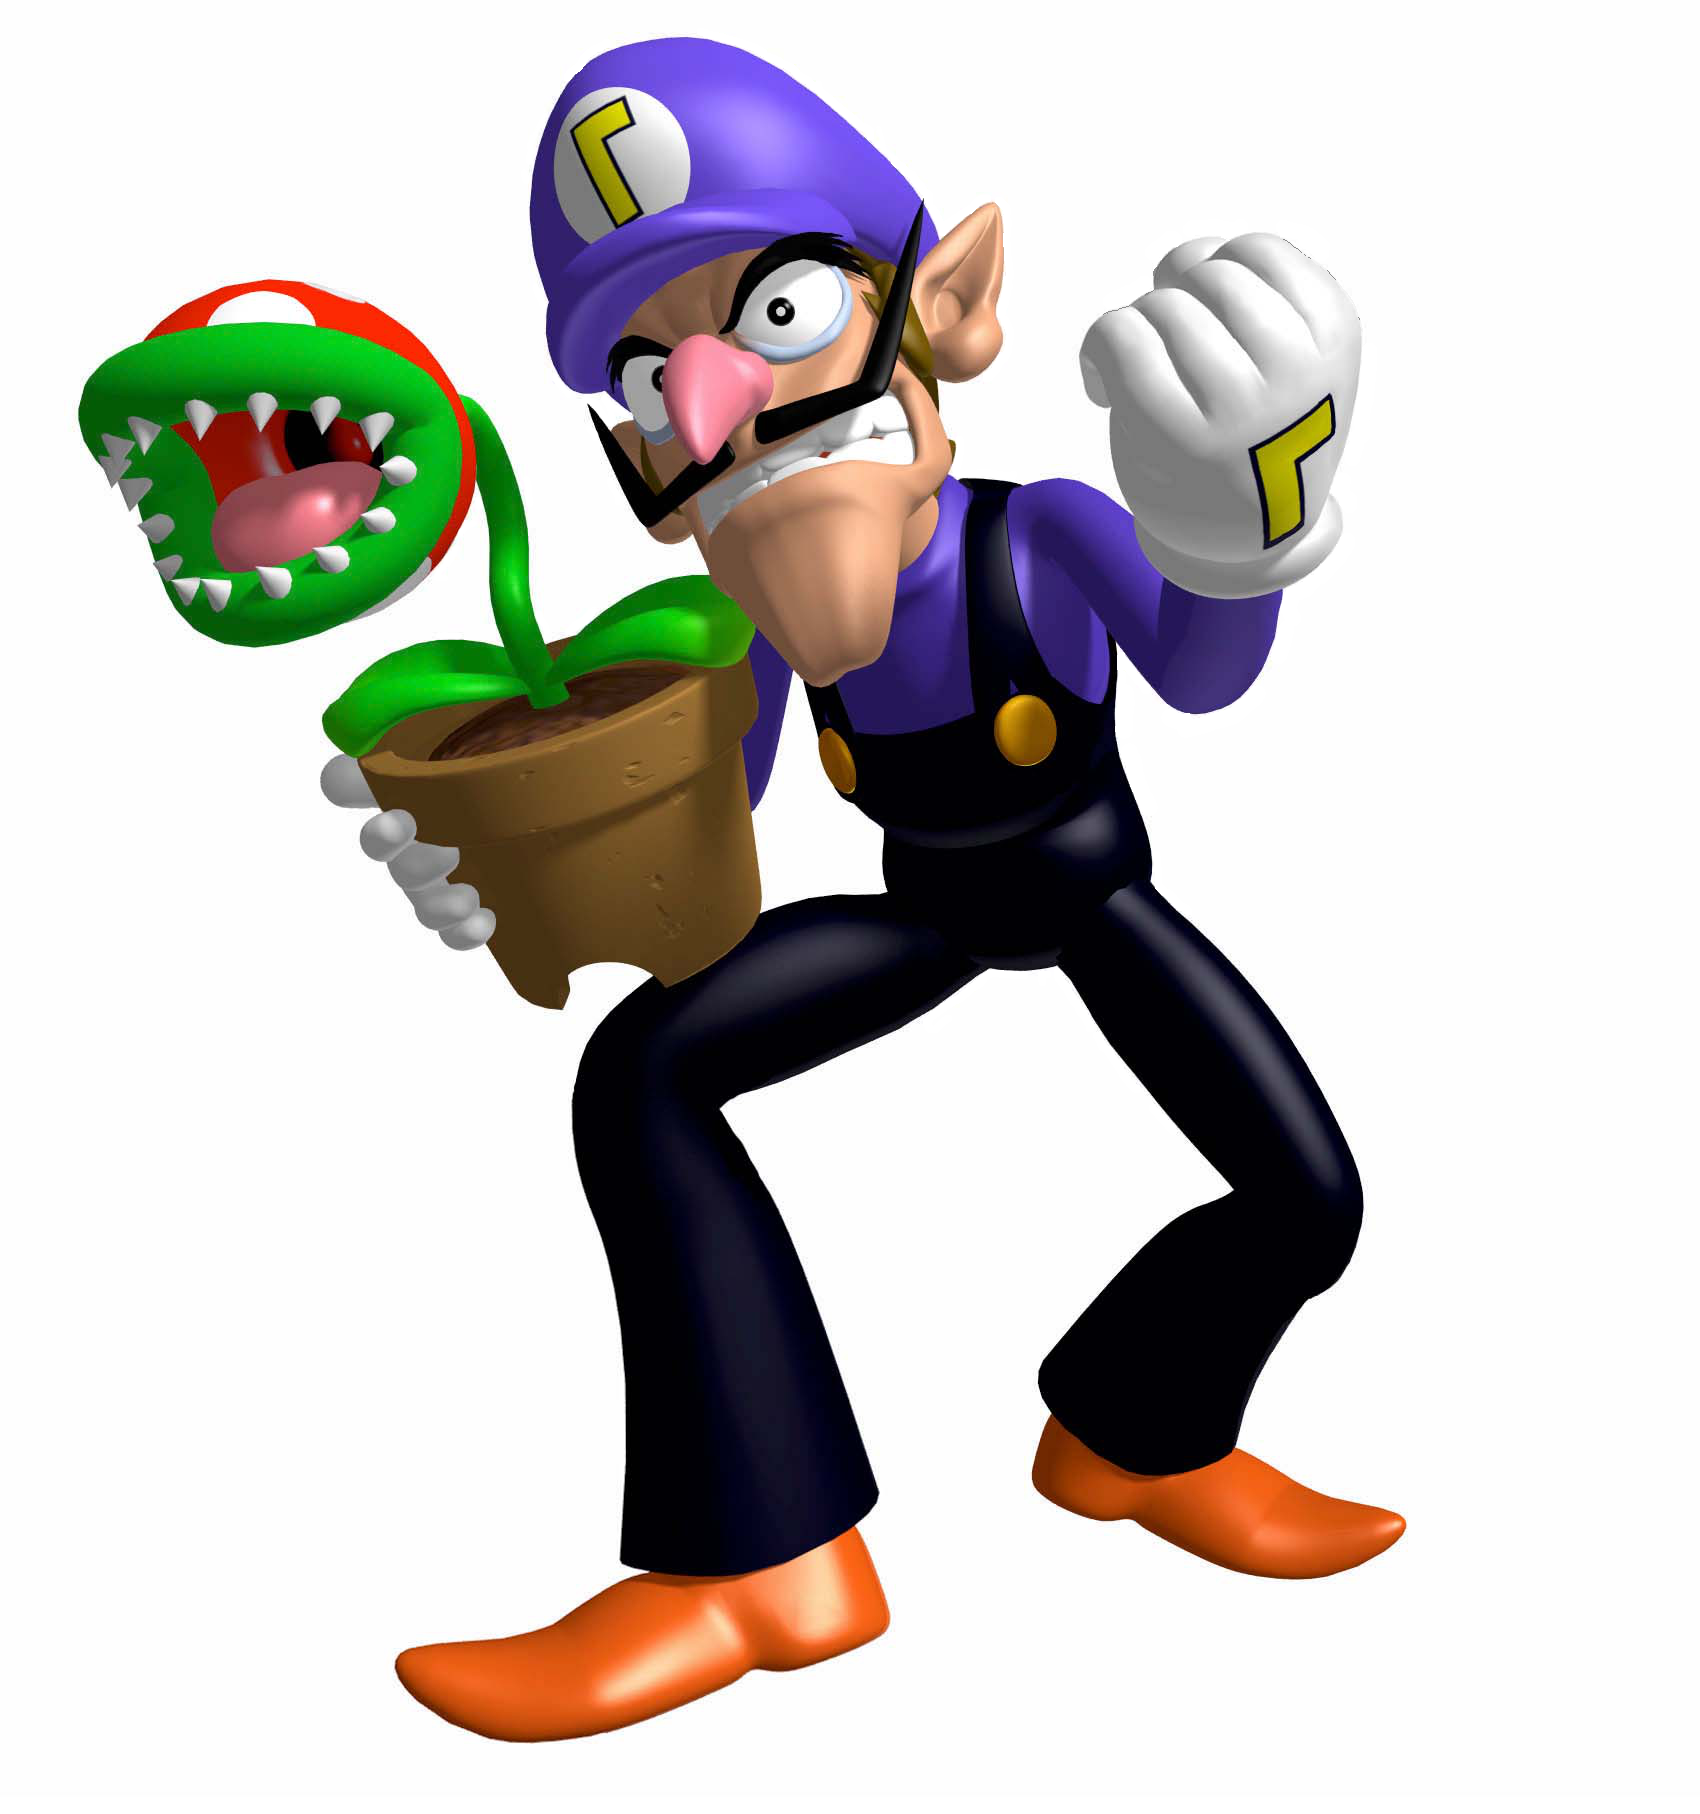 Waluigi/gallery | Nintendo | FANDOM powered by Wikia